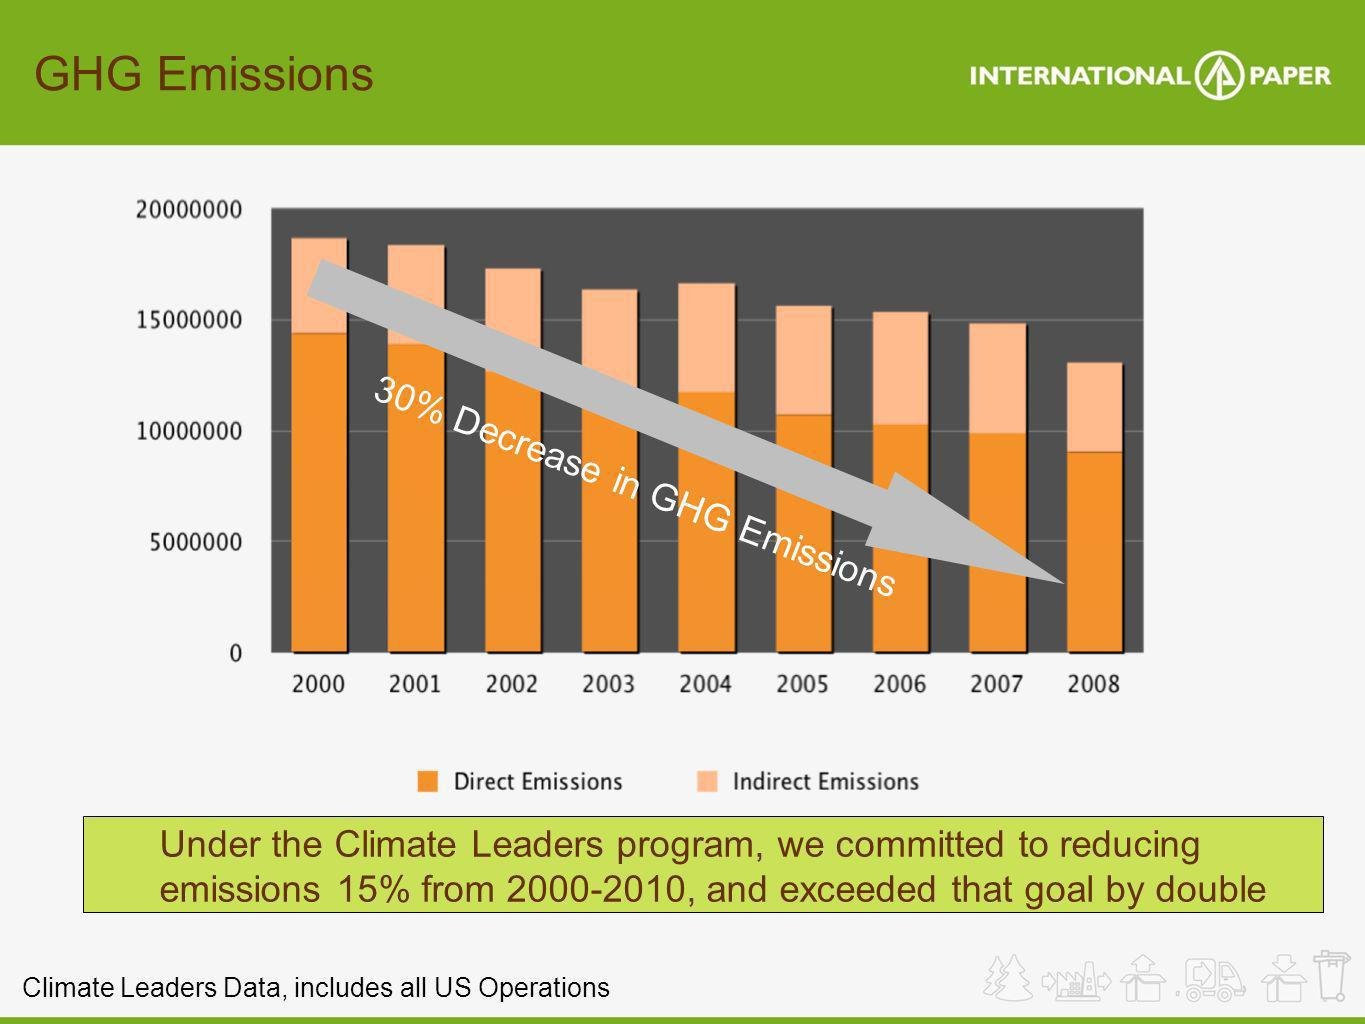 GHG Emissions 30% Decrease in GHG Emissions